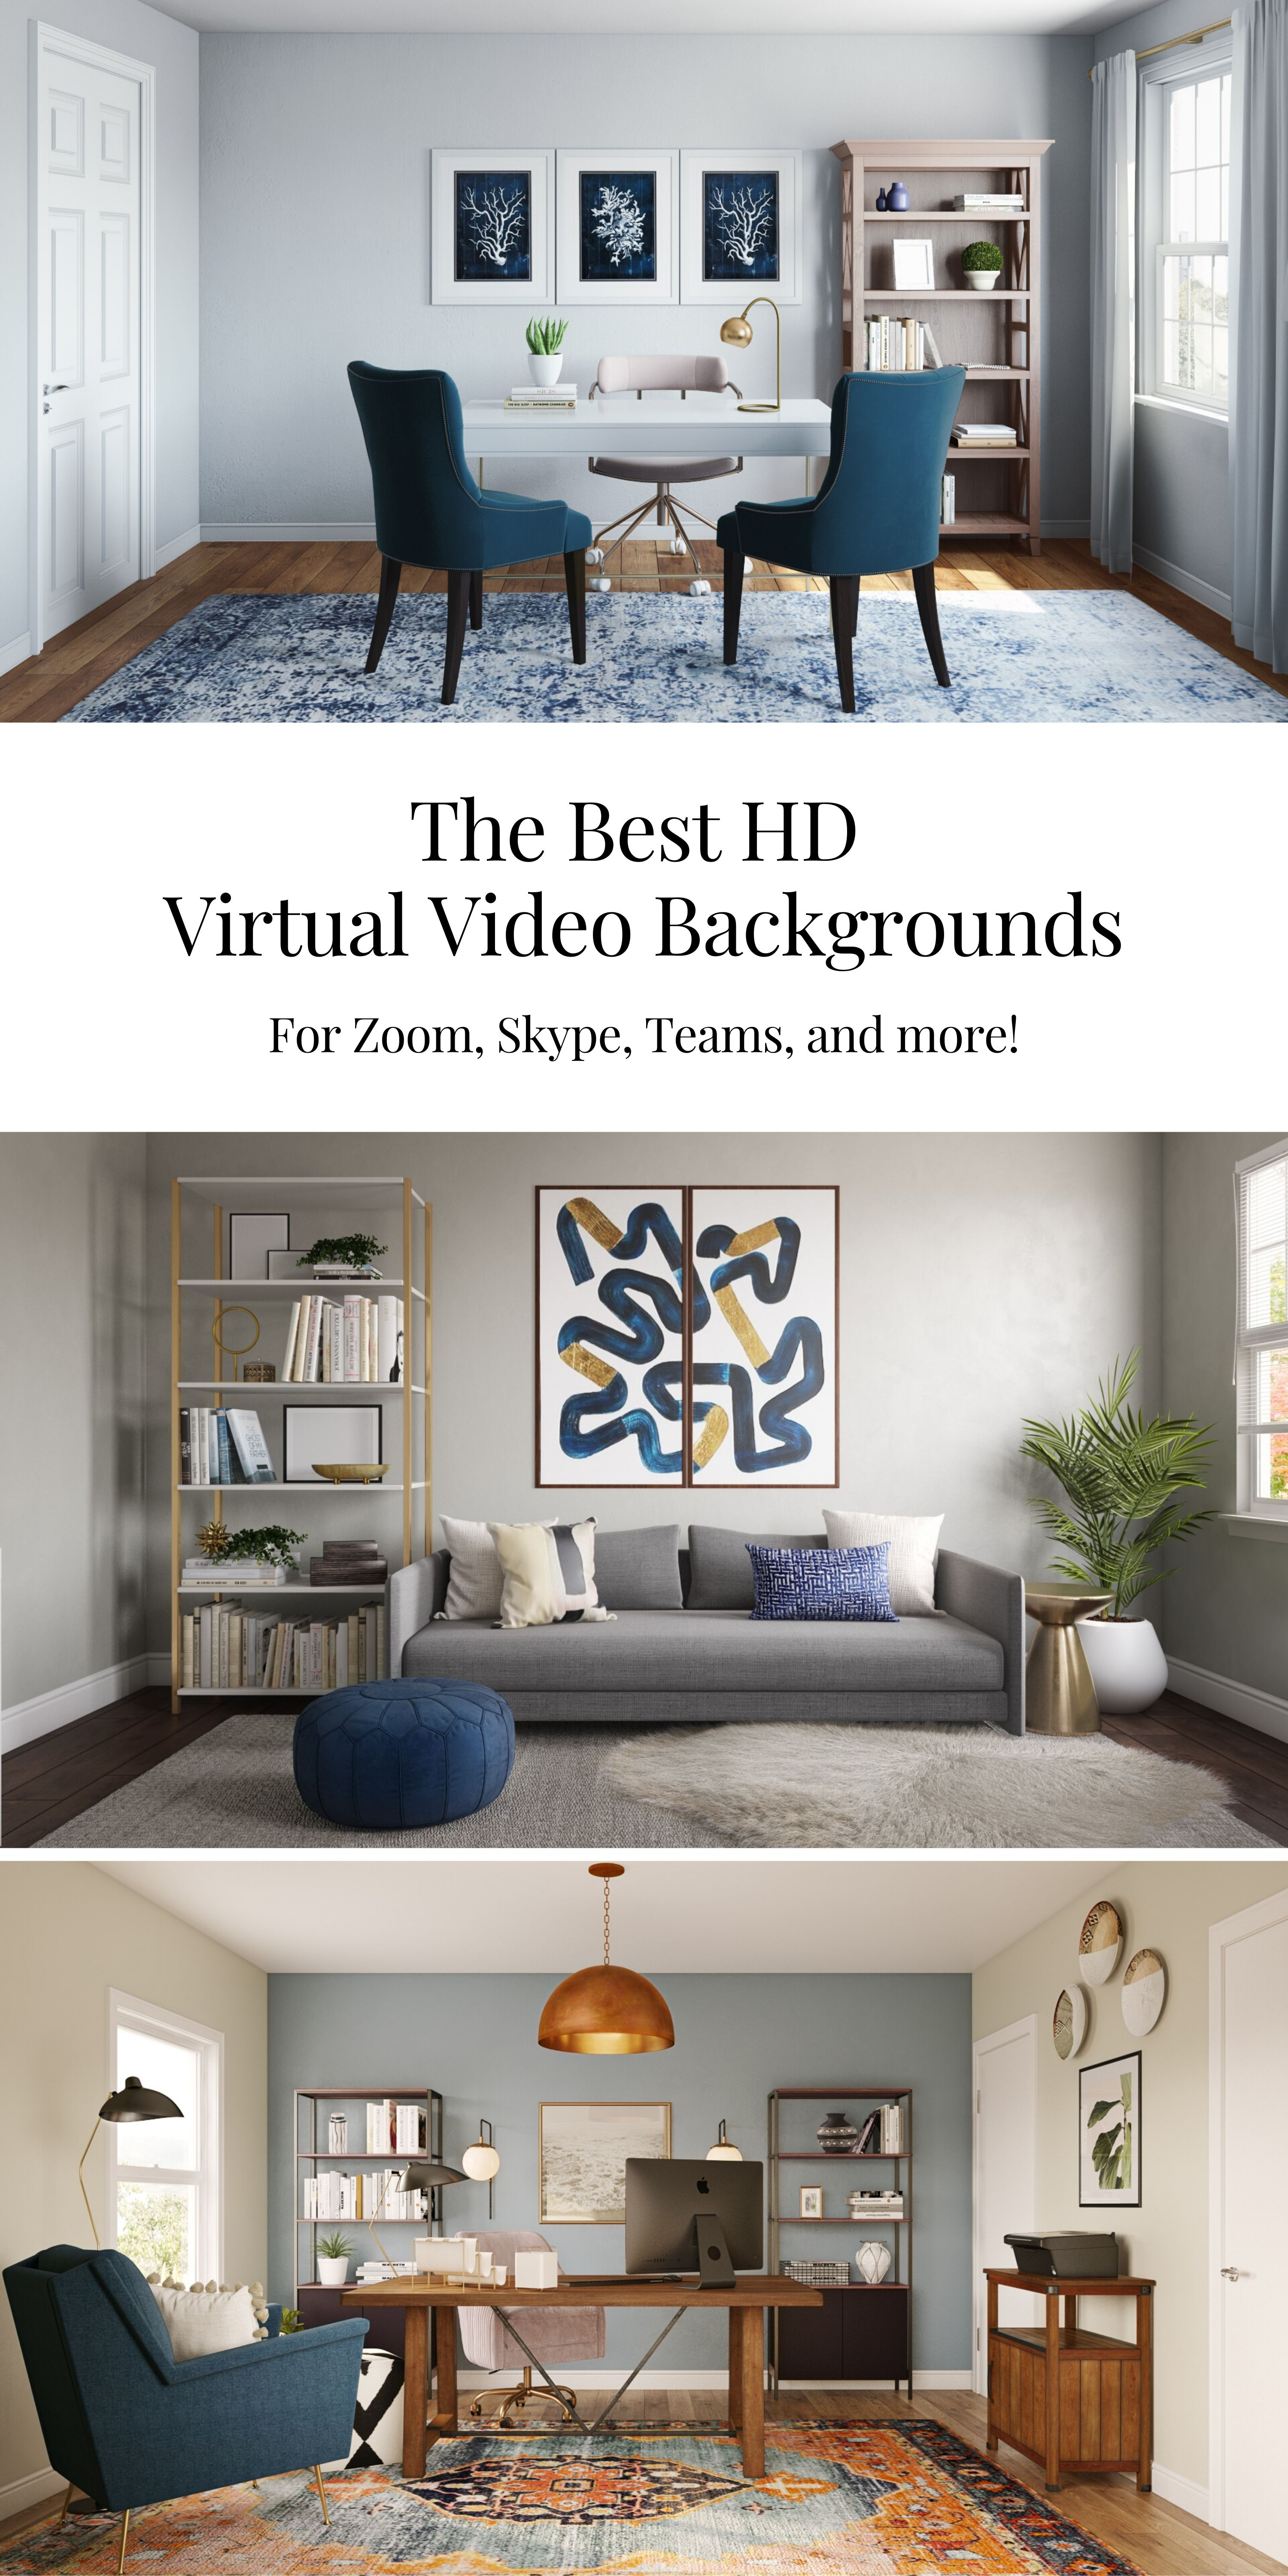 Virtual Backgrounds Zoom Backgrounds Teams Backgrounds Video Backgrounds Zoom Virtual Games Blue Living Room Decor Blue Living Room Therapist Office Decor